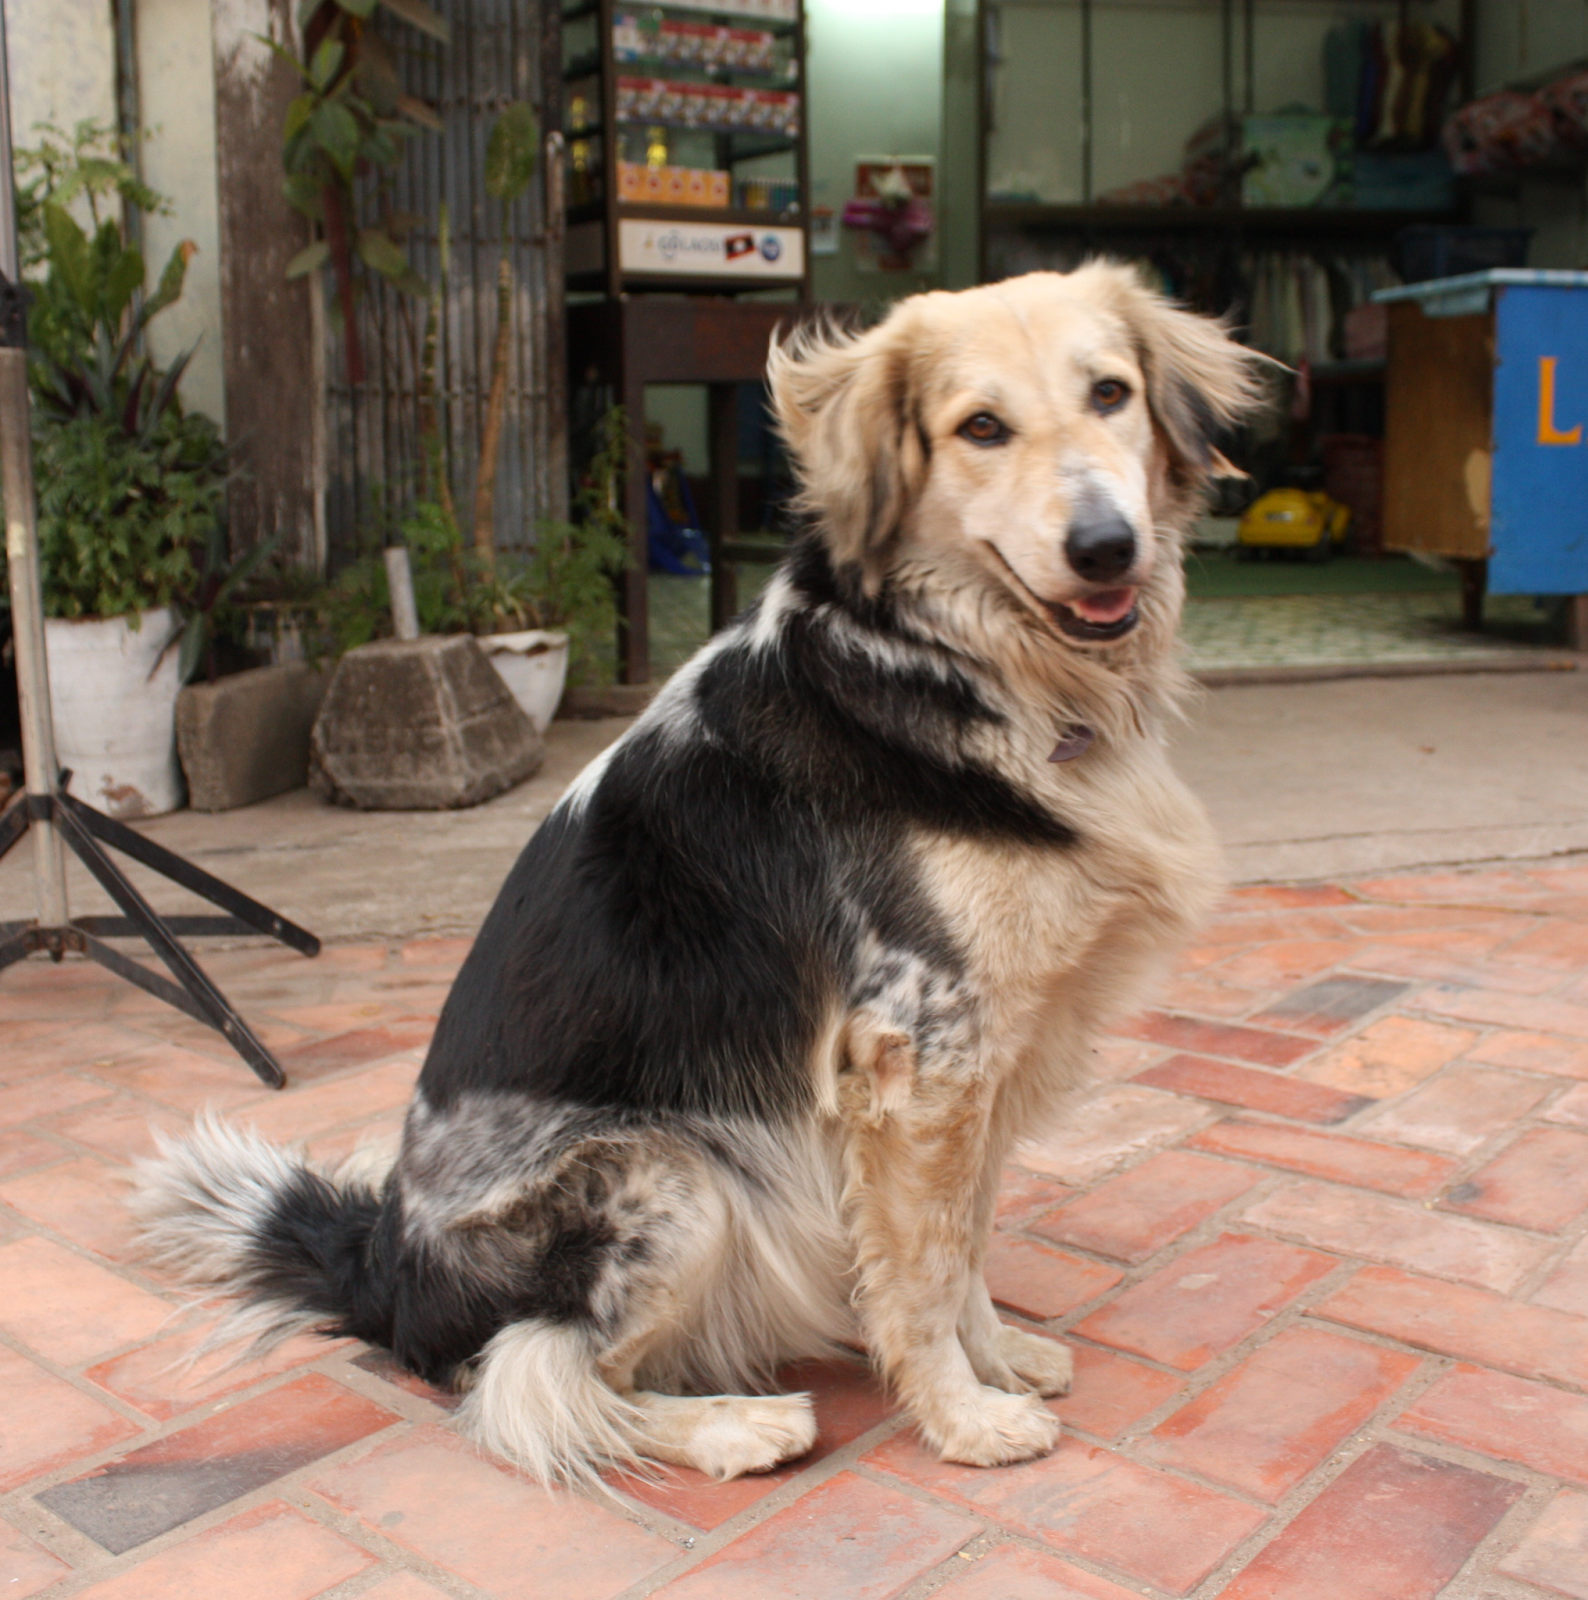 An image of a mixed breed dog